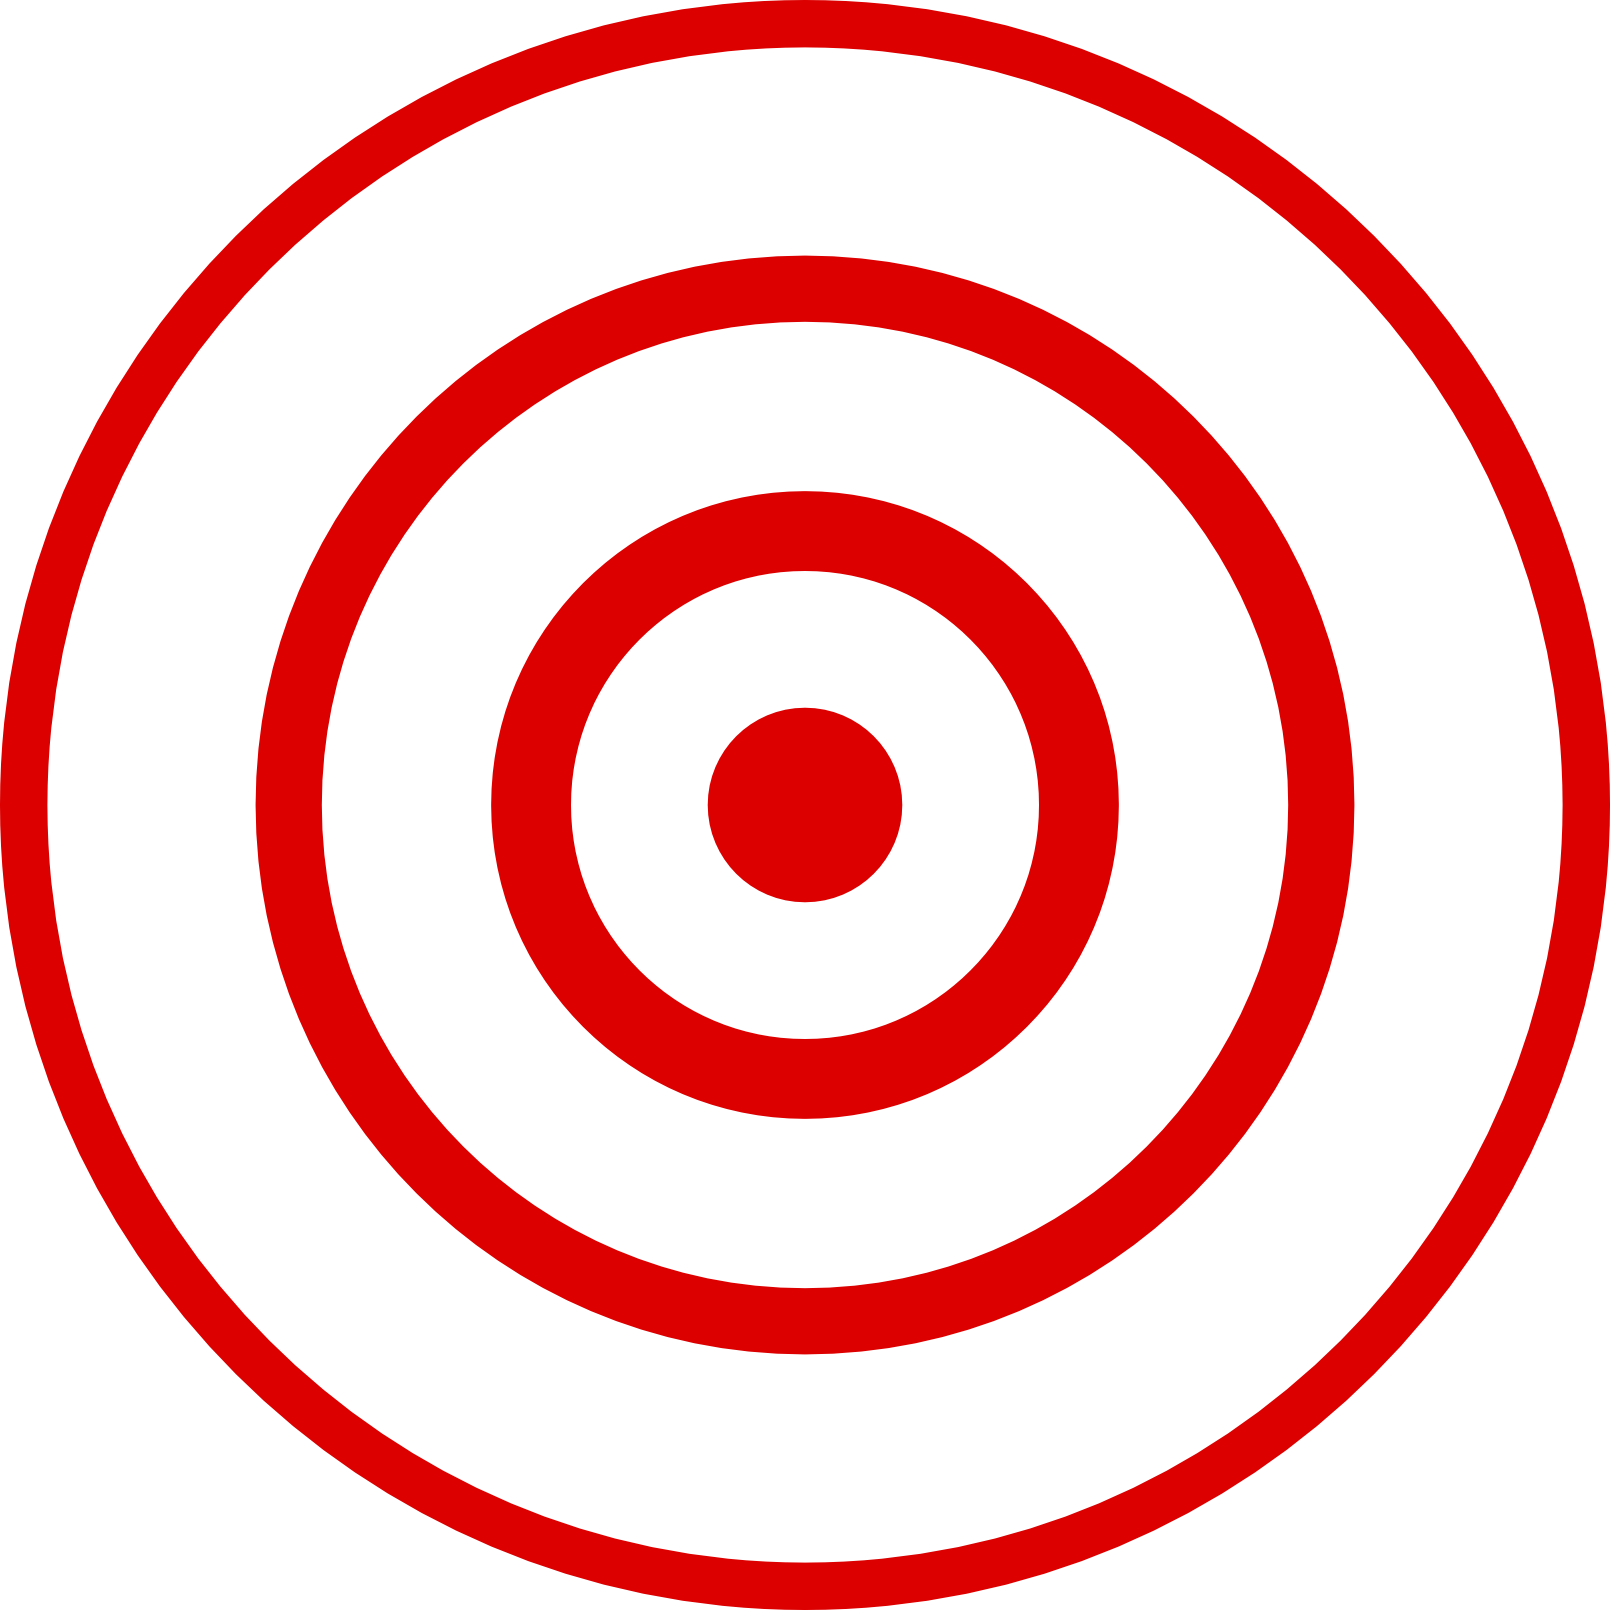 File png wikimedia commons. Bullseye clipart image royalty free stock